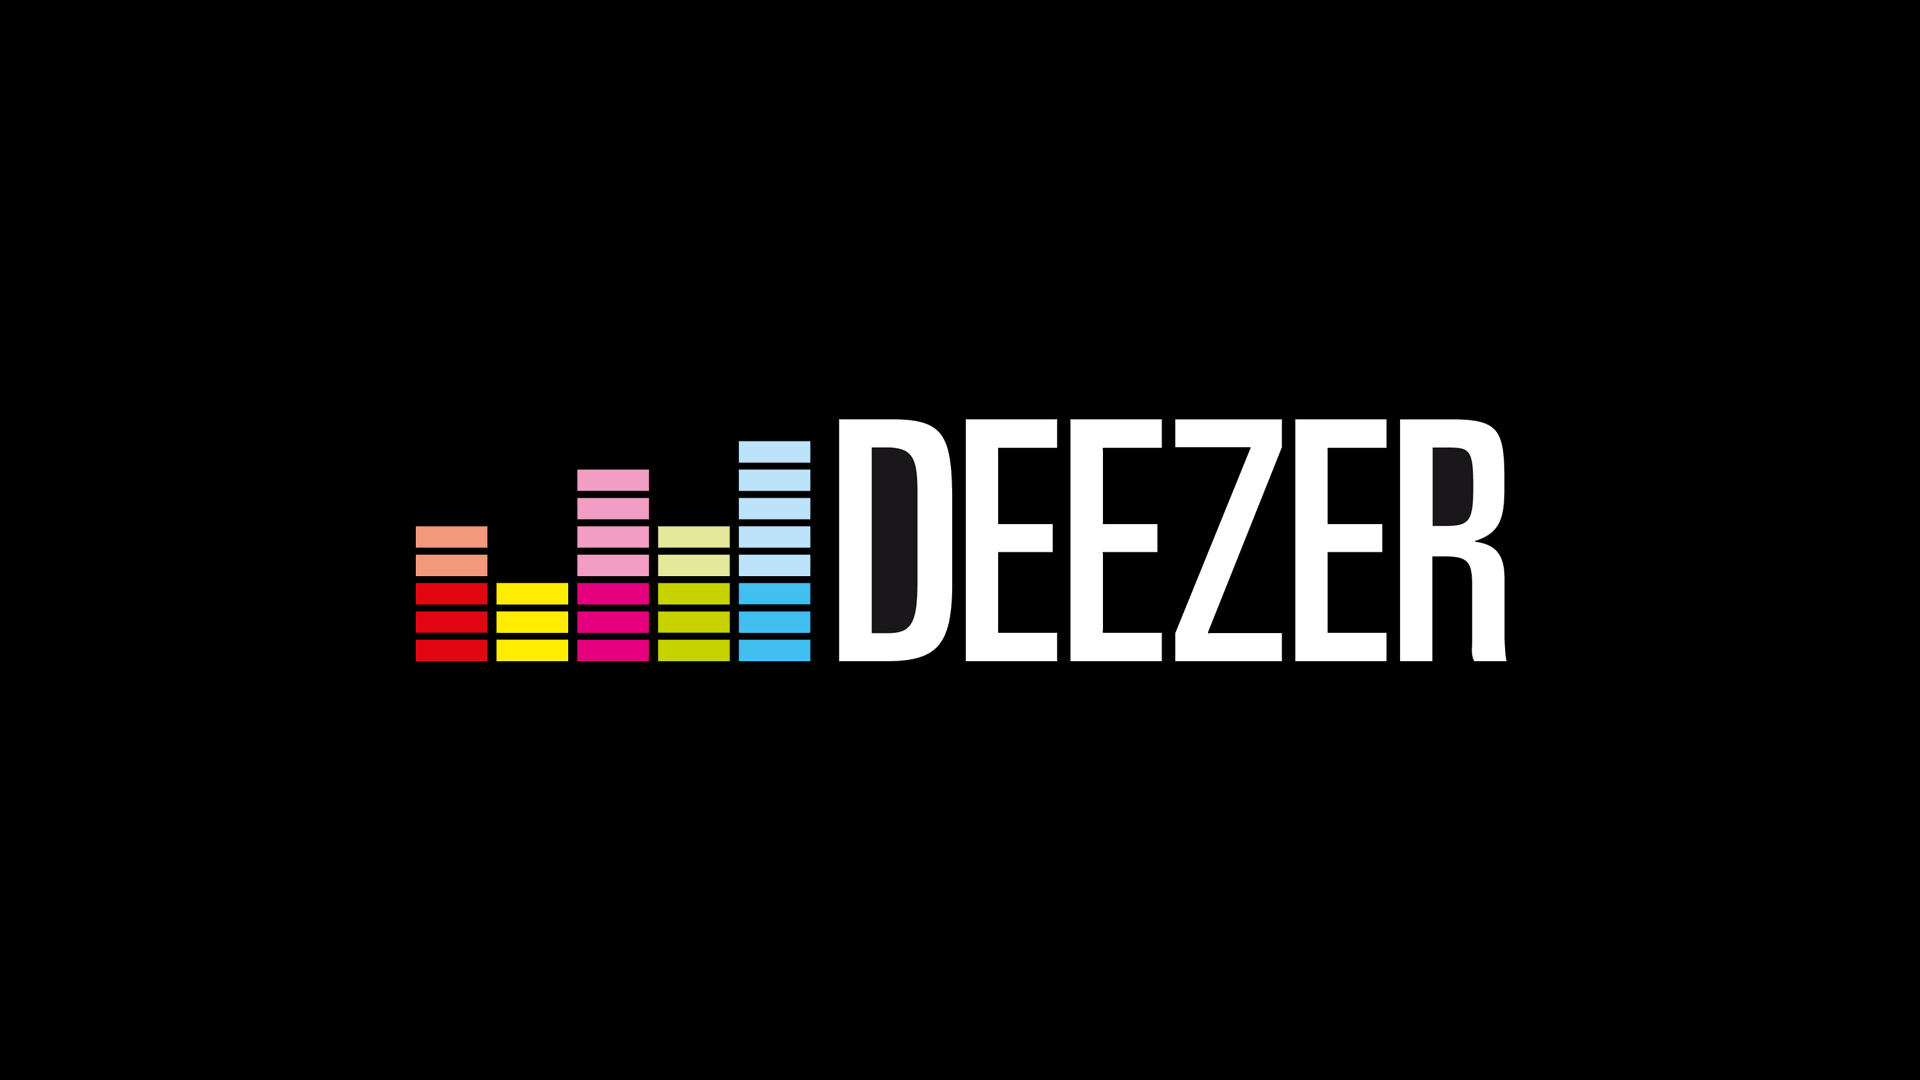 5,000 Deezer streams music promotion